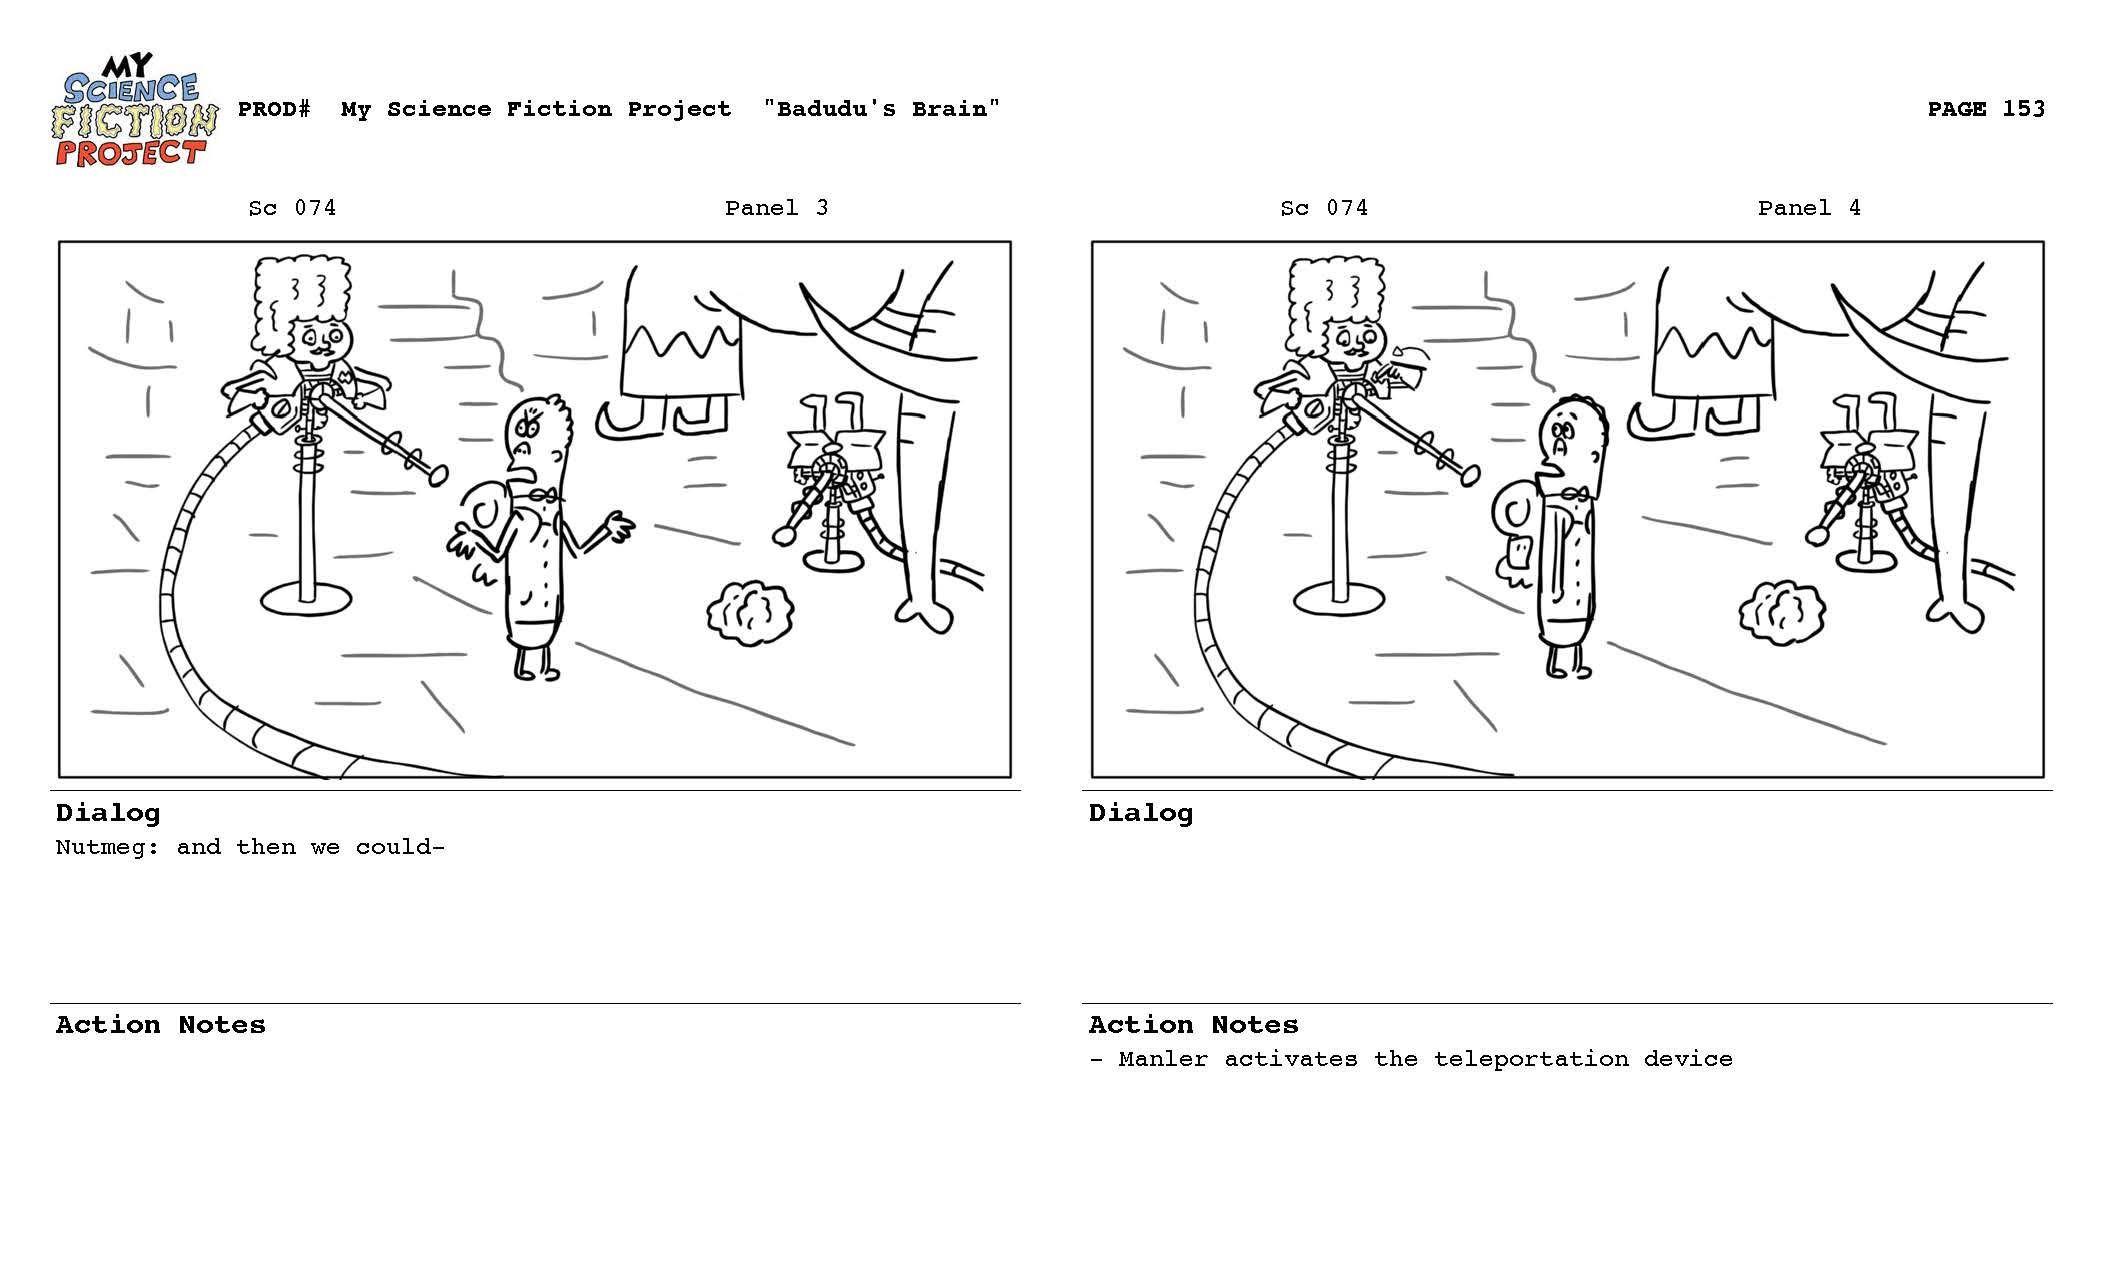 My_Science_Fiction_Project_SB_083112_reduced_Page_153.jpg